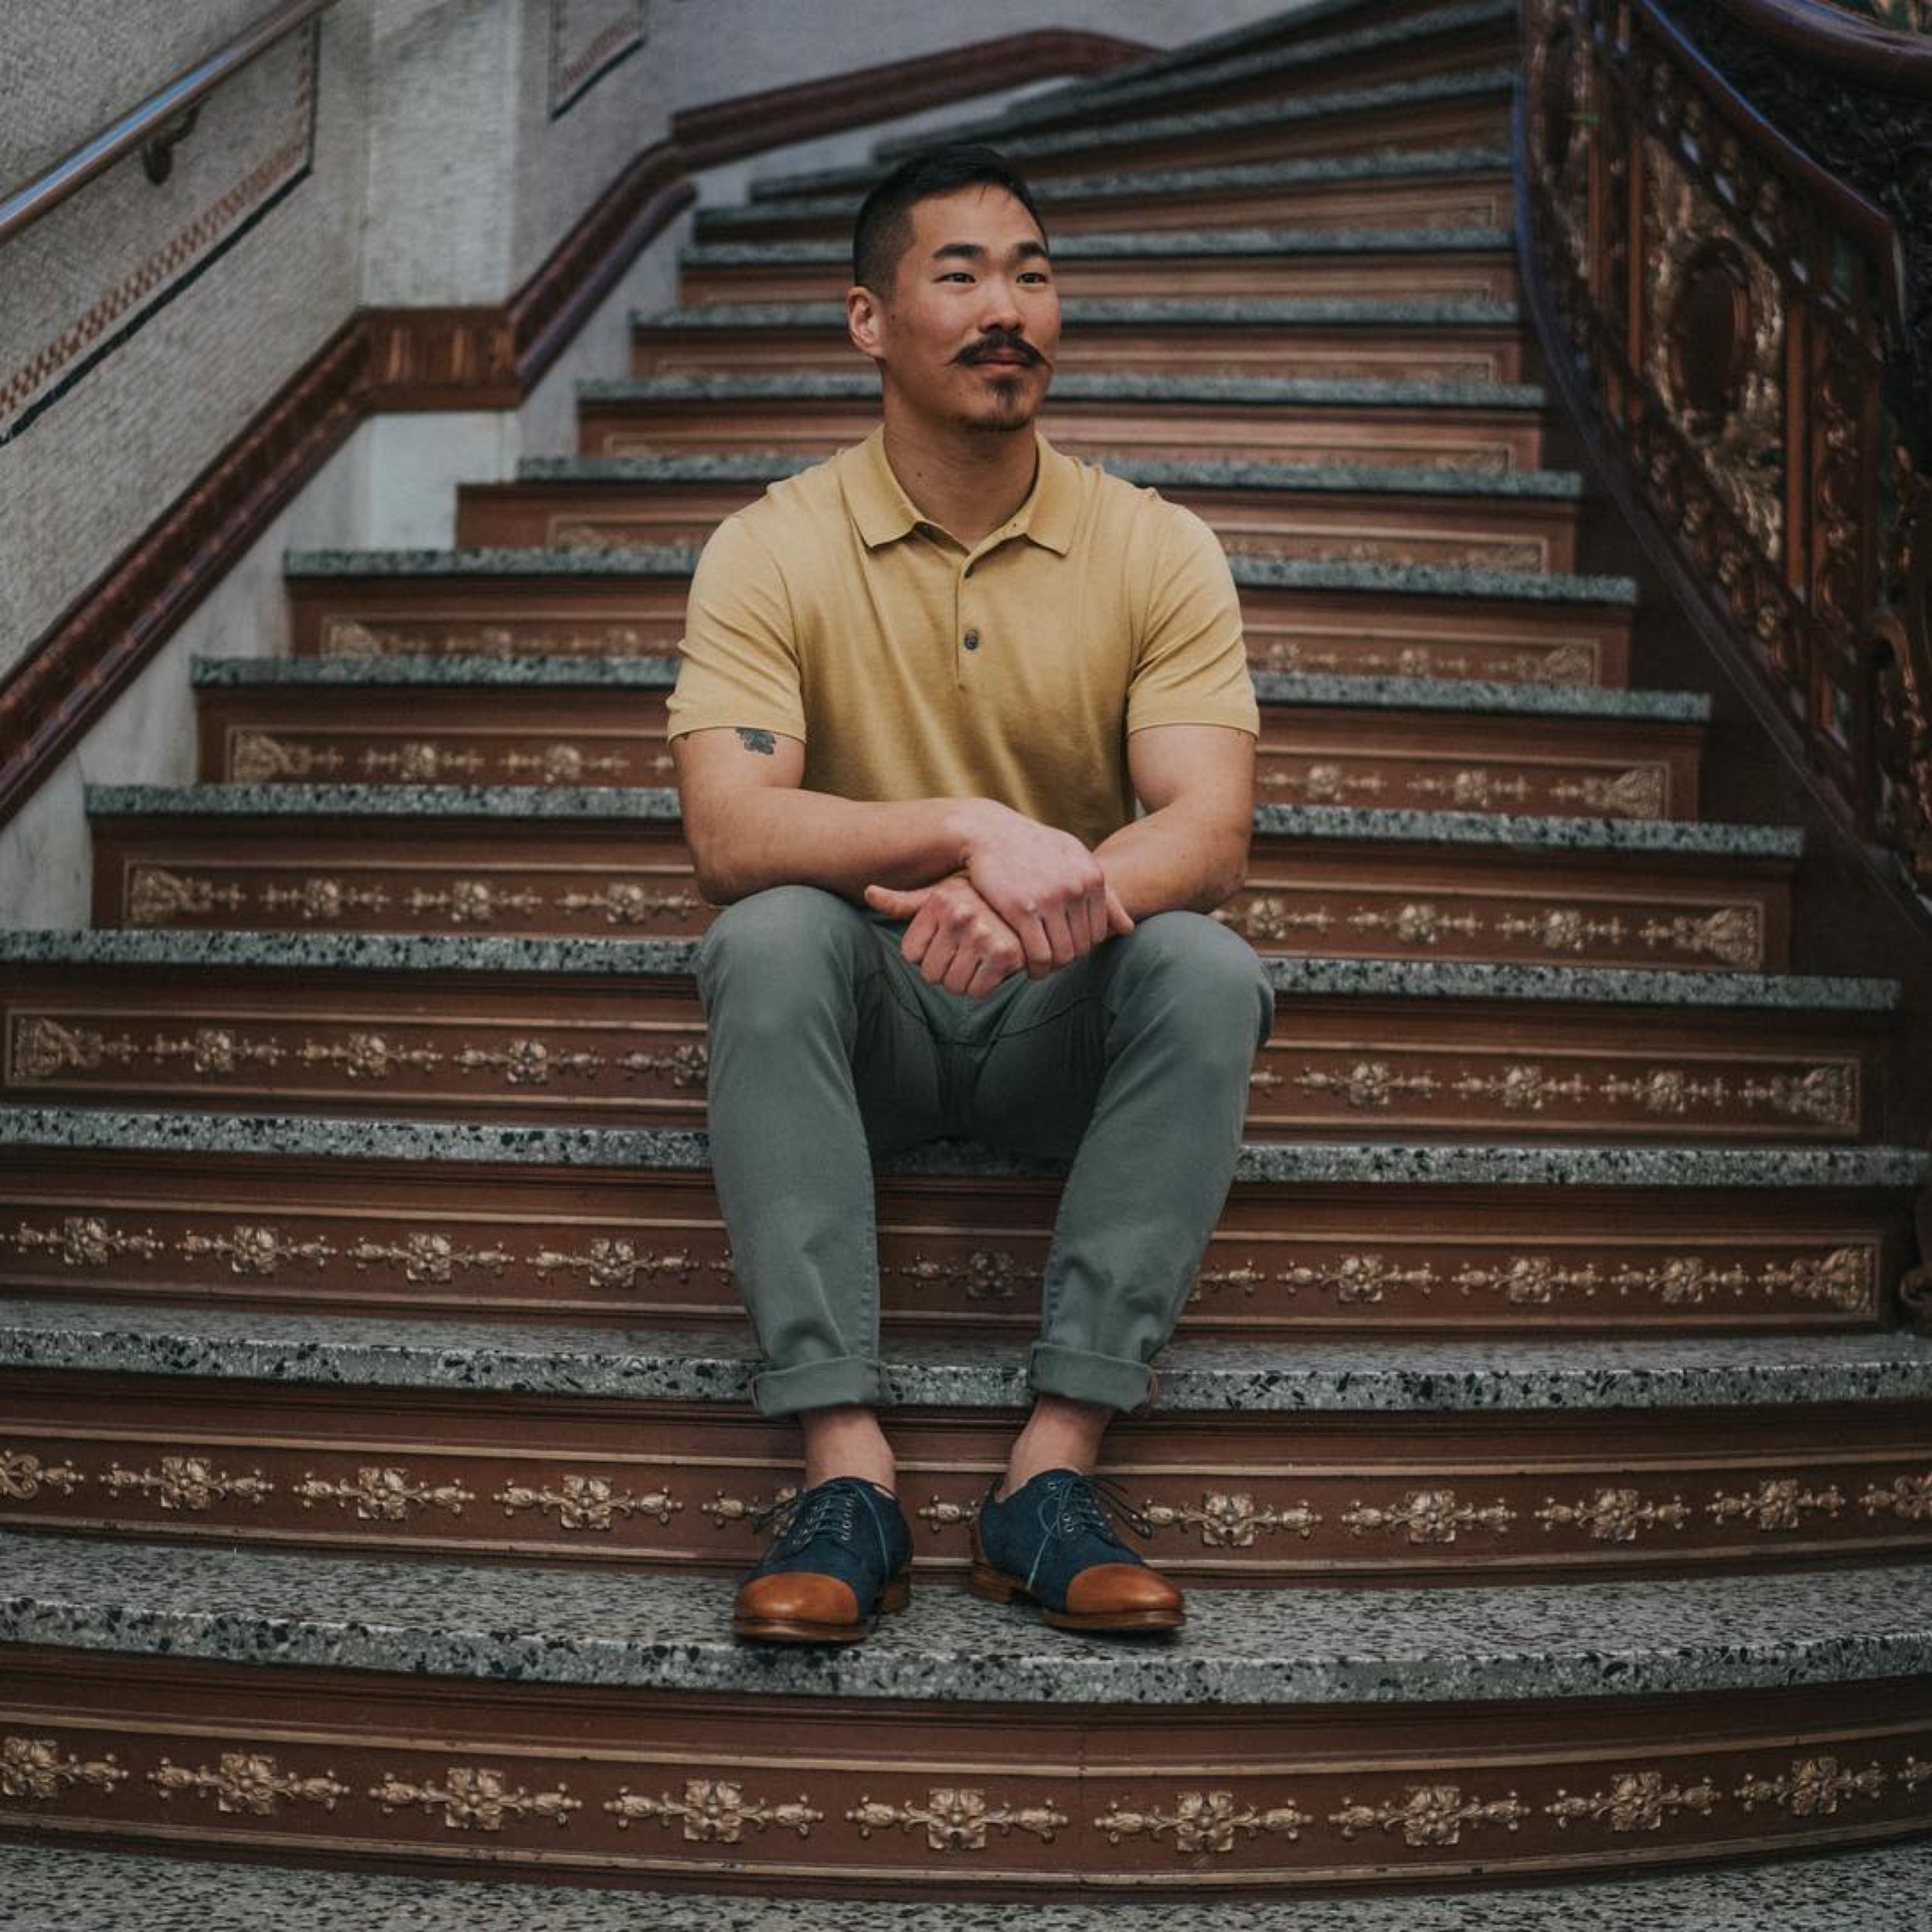 Eugene Kim  Eugene Kim is a Utah-native who's beginnings were rooted in advertising and application development. Although he still dabbles in his previous work, Eugene has developed a serious passion for coffee with help from both Utah's coffee community and the Bean Yard's Co-Founder, Rock Kim.